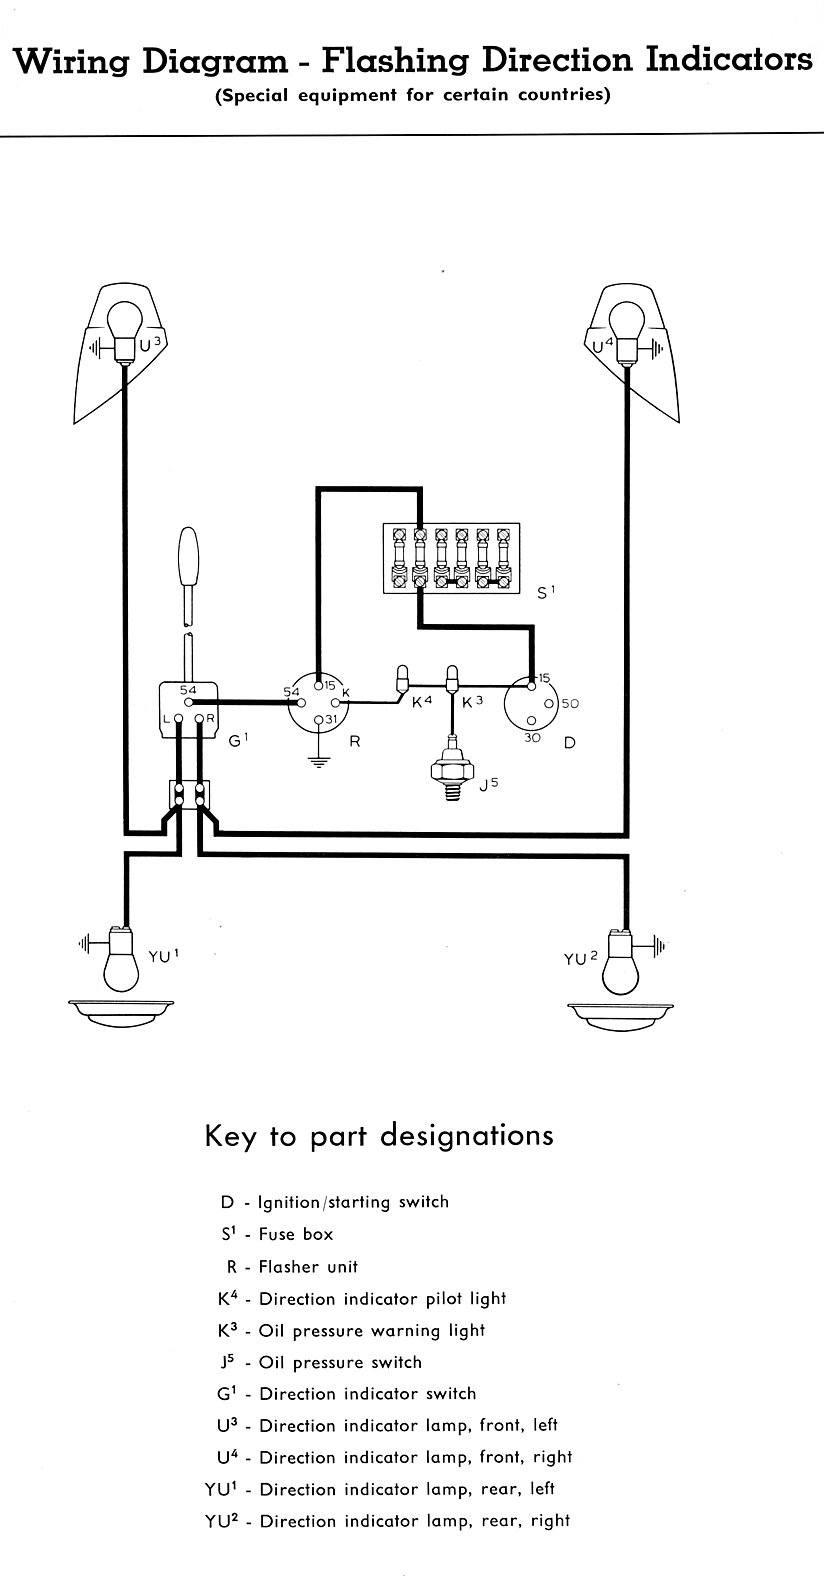 1974 Vw Ignition Wiring Diagram Another Blog About Datsun 620 Truck Thesamba Com Type 2 Diagrams Rh